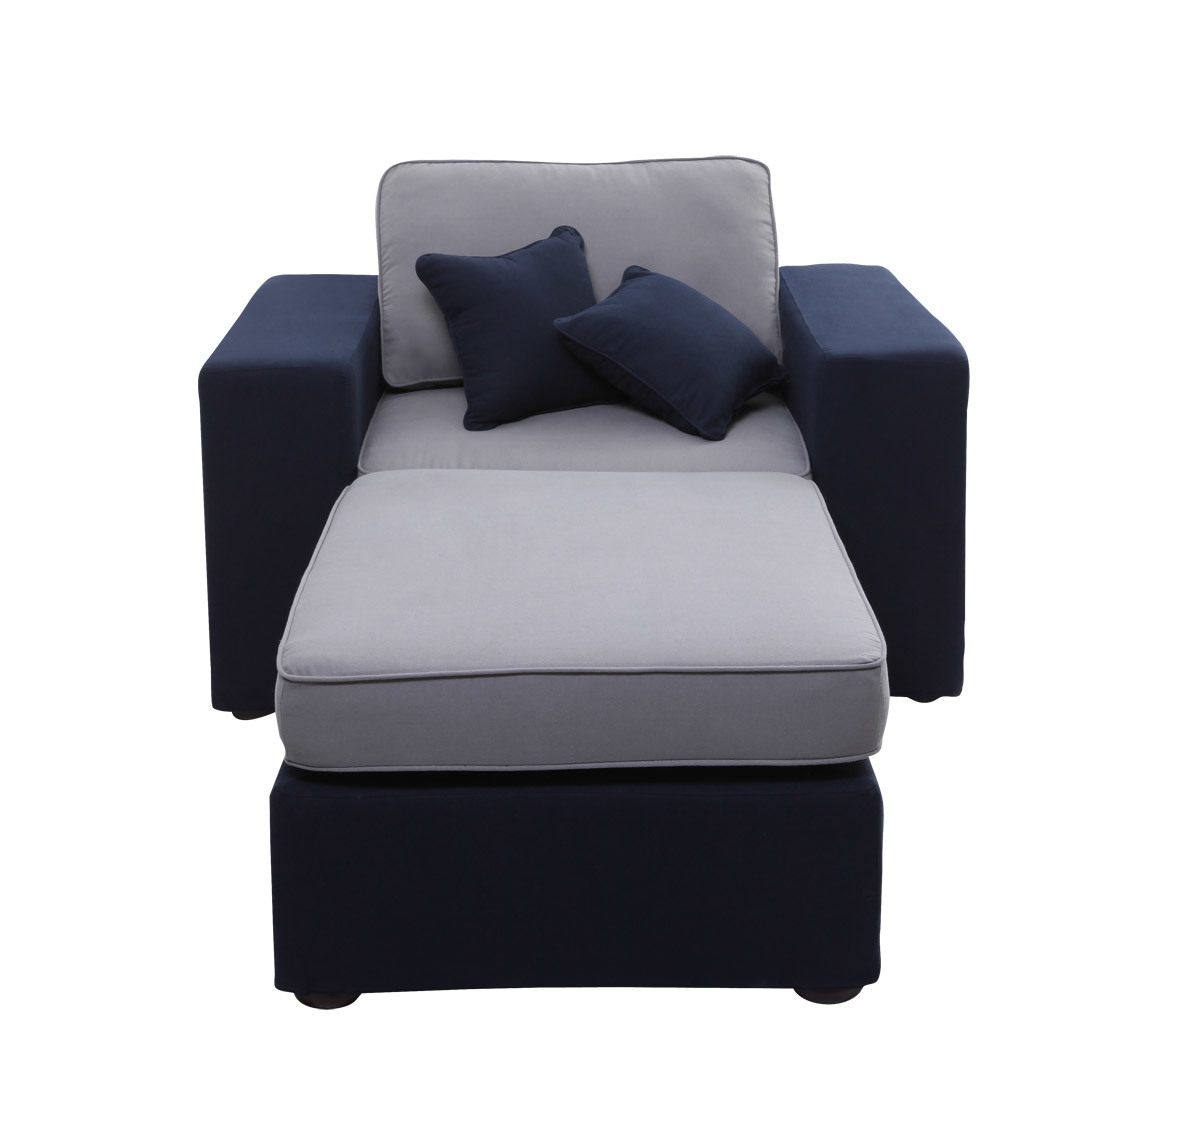 fauteuil m ridienne modulable bleu marine et gris up to. Black Bedroom Furniture Sets. Home Design Ideas